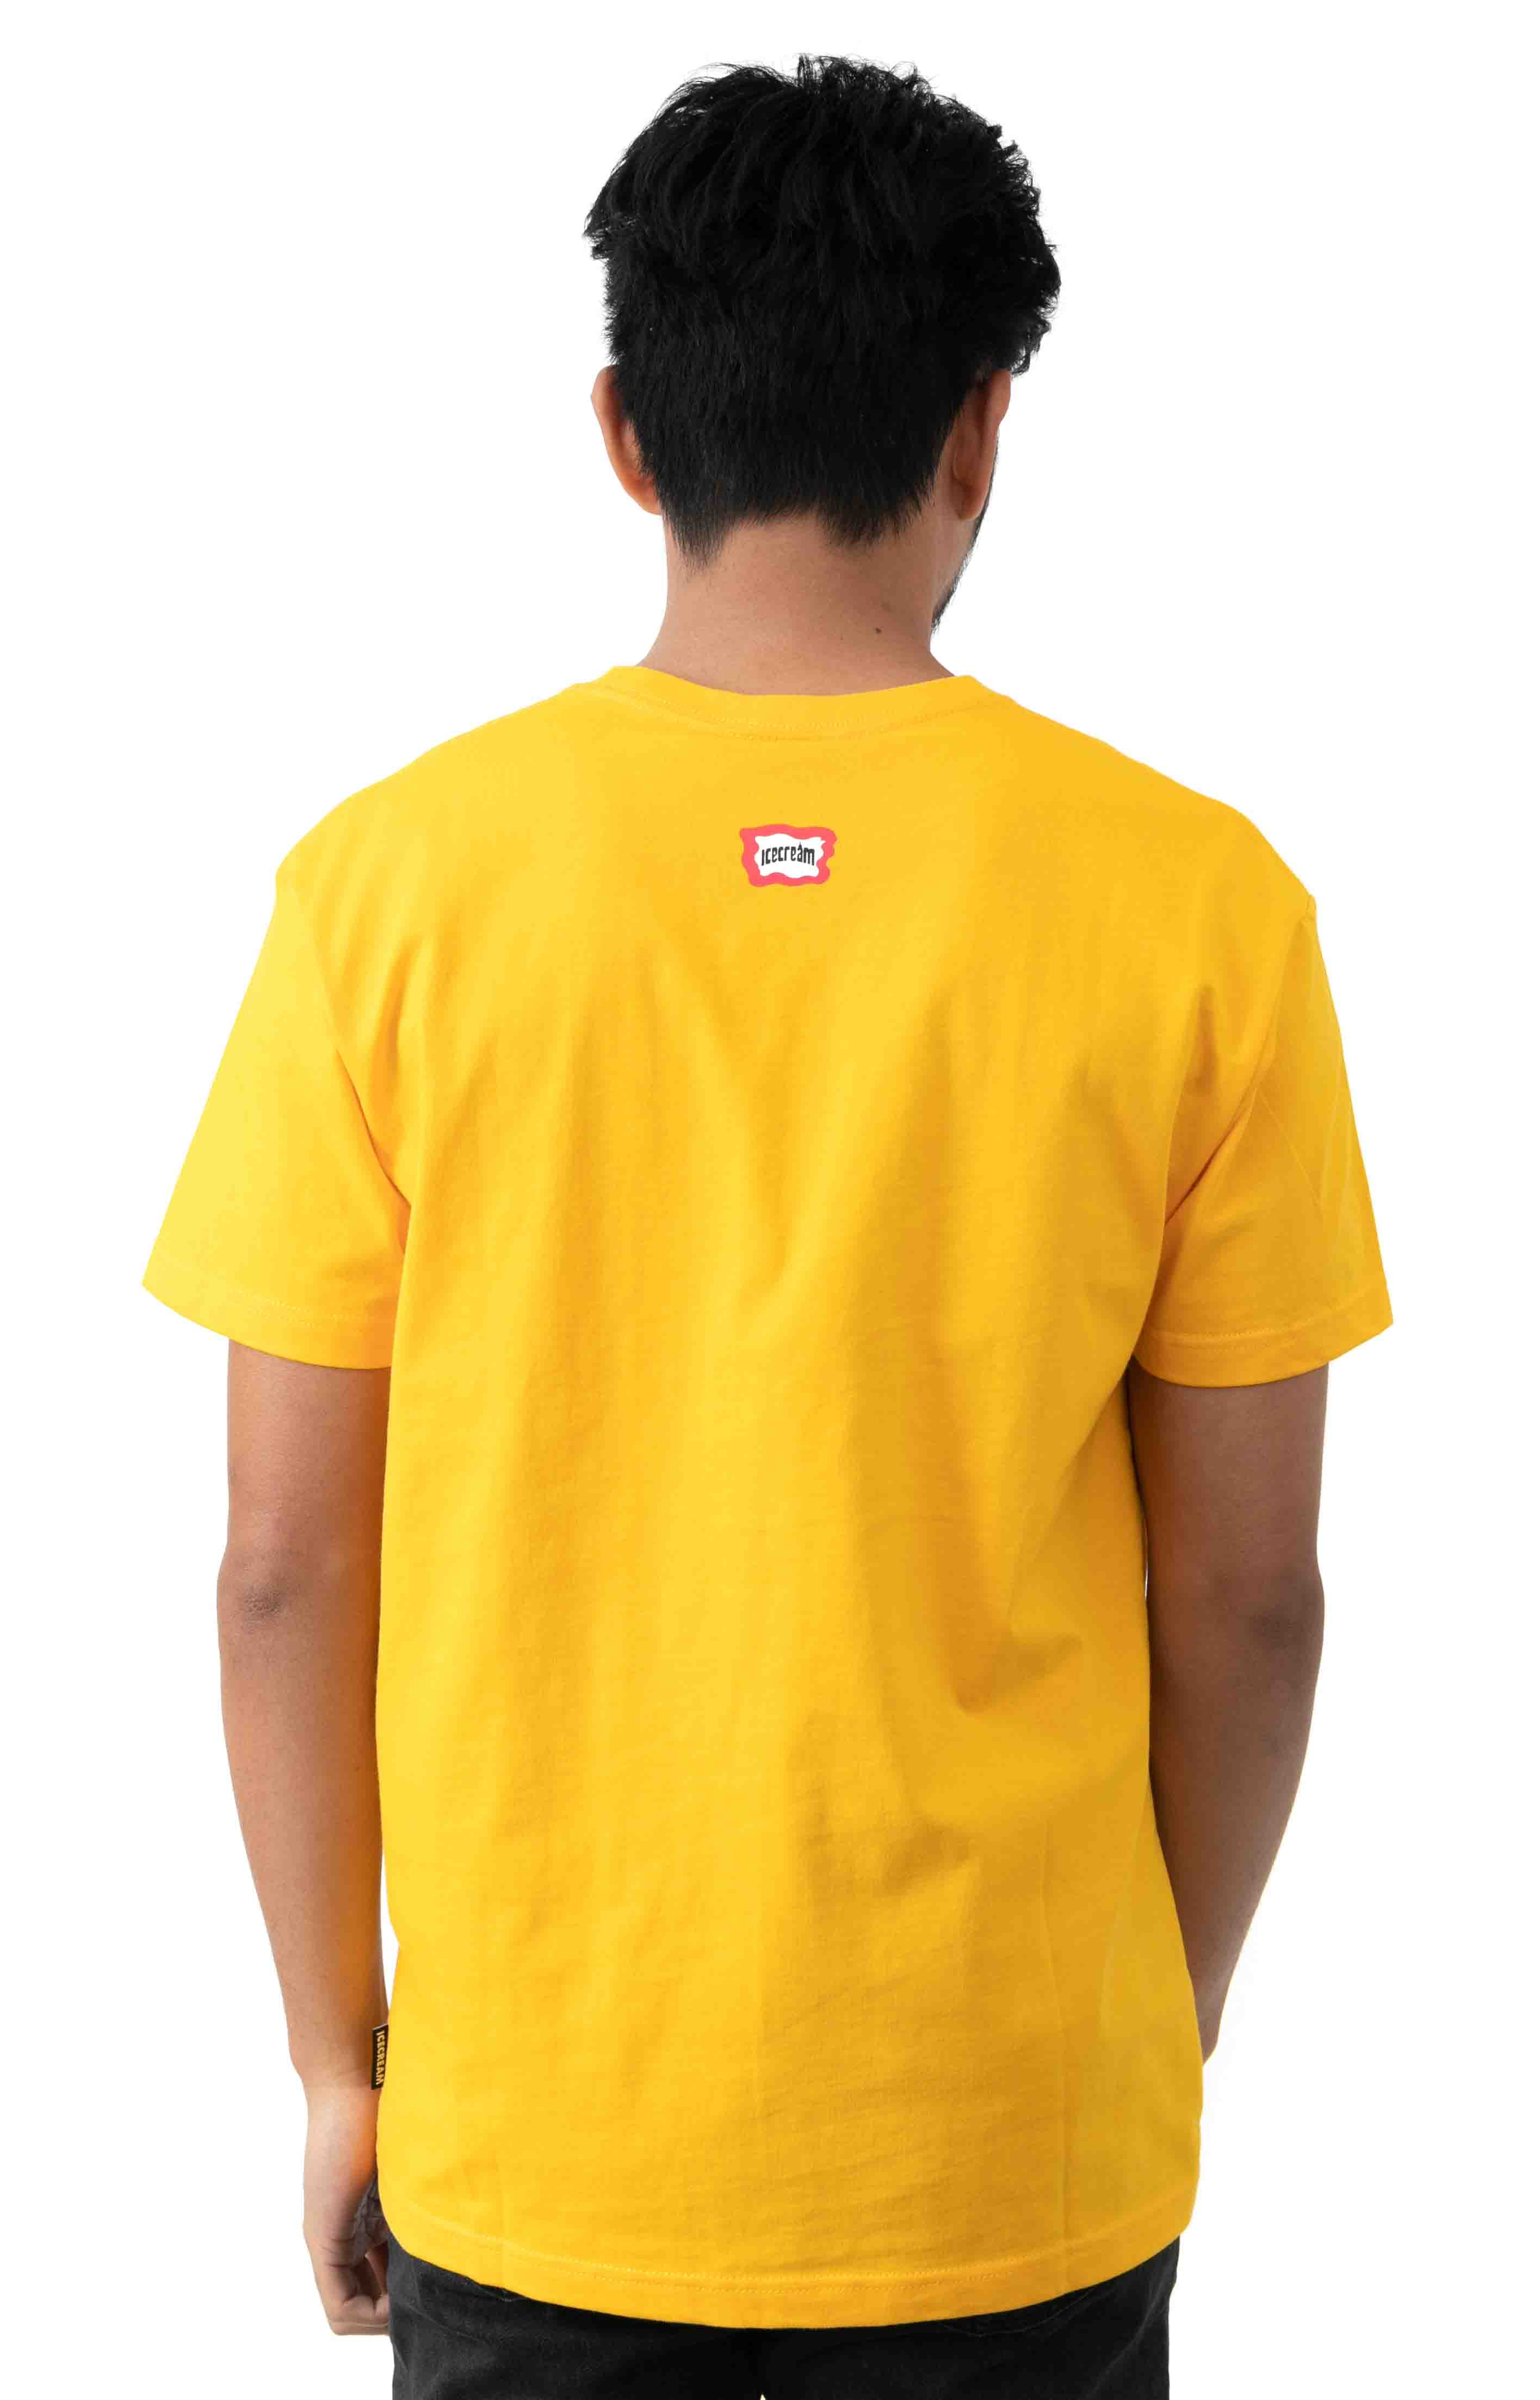 At The Top T-Shirt - Spectra Yellow 3